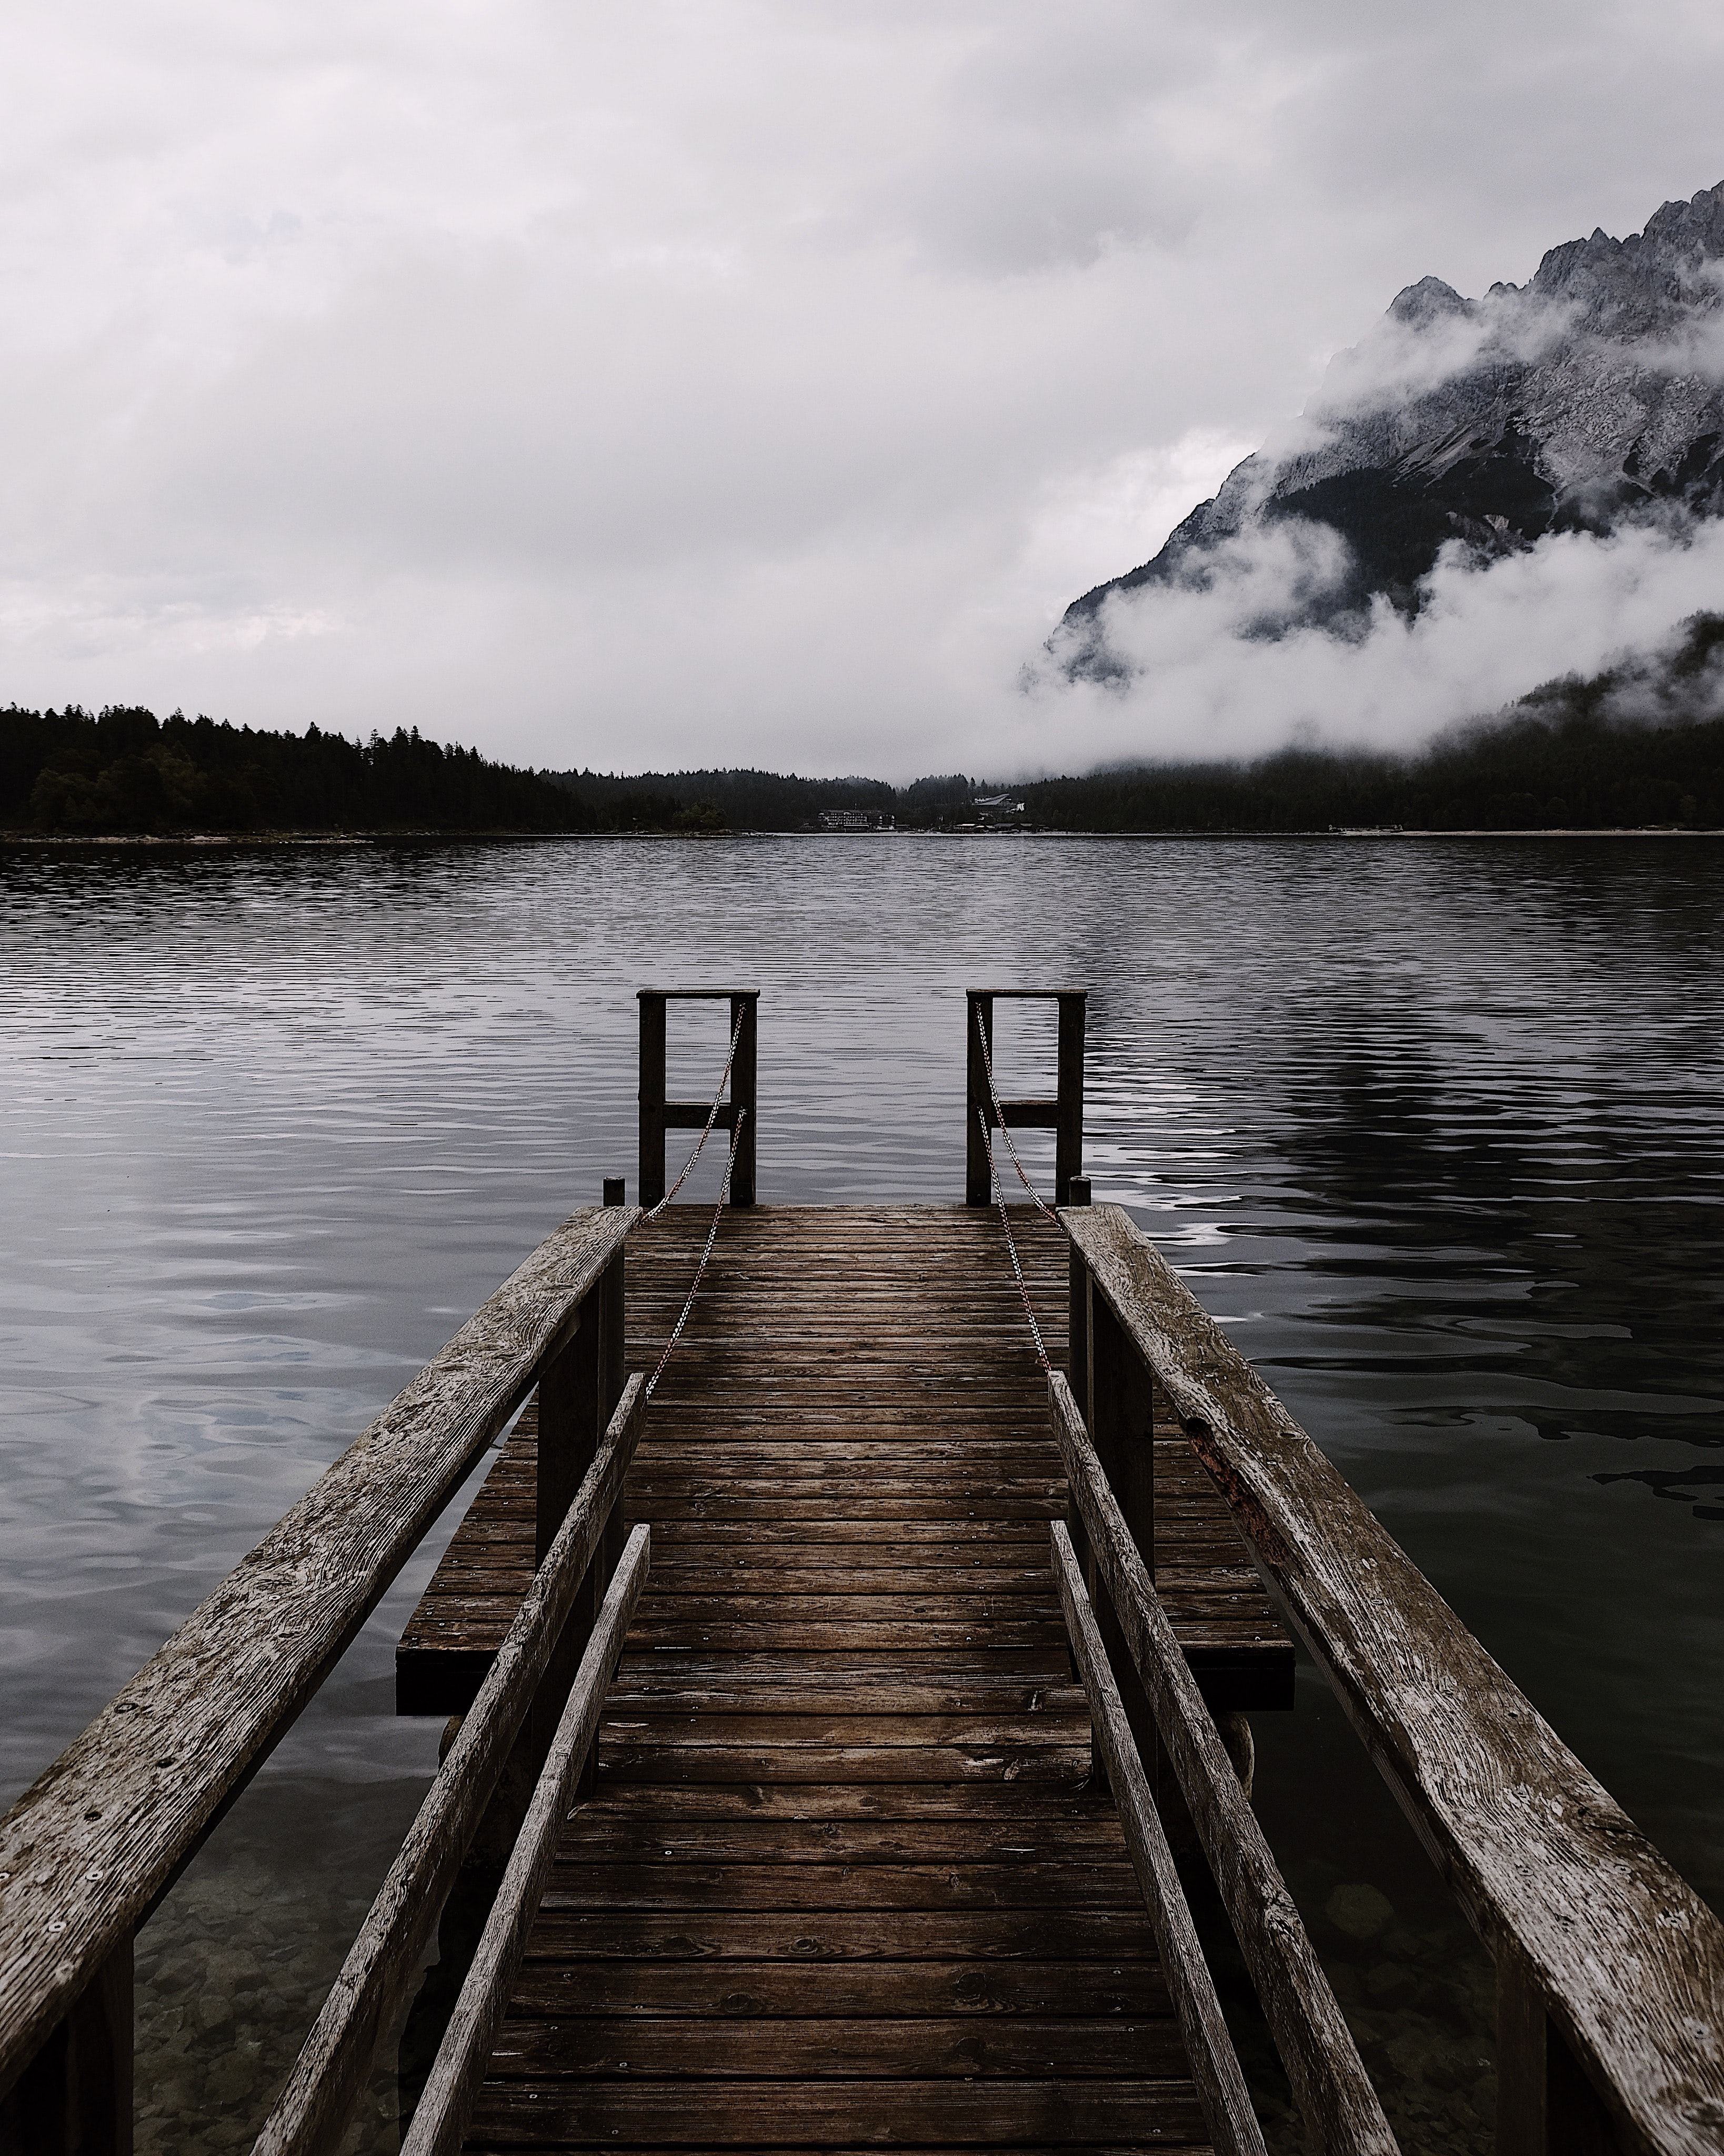 Desolate pier leads to a calm lake with mountain views